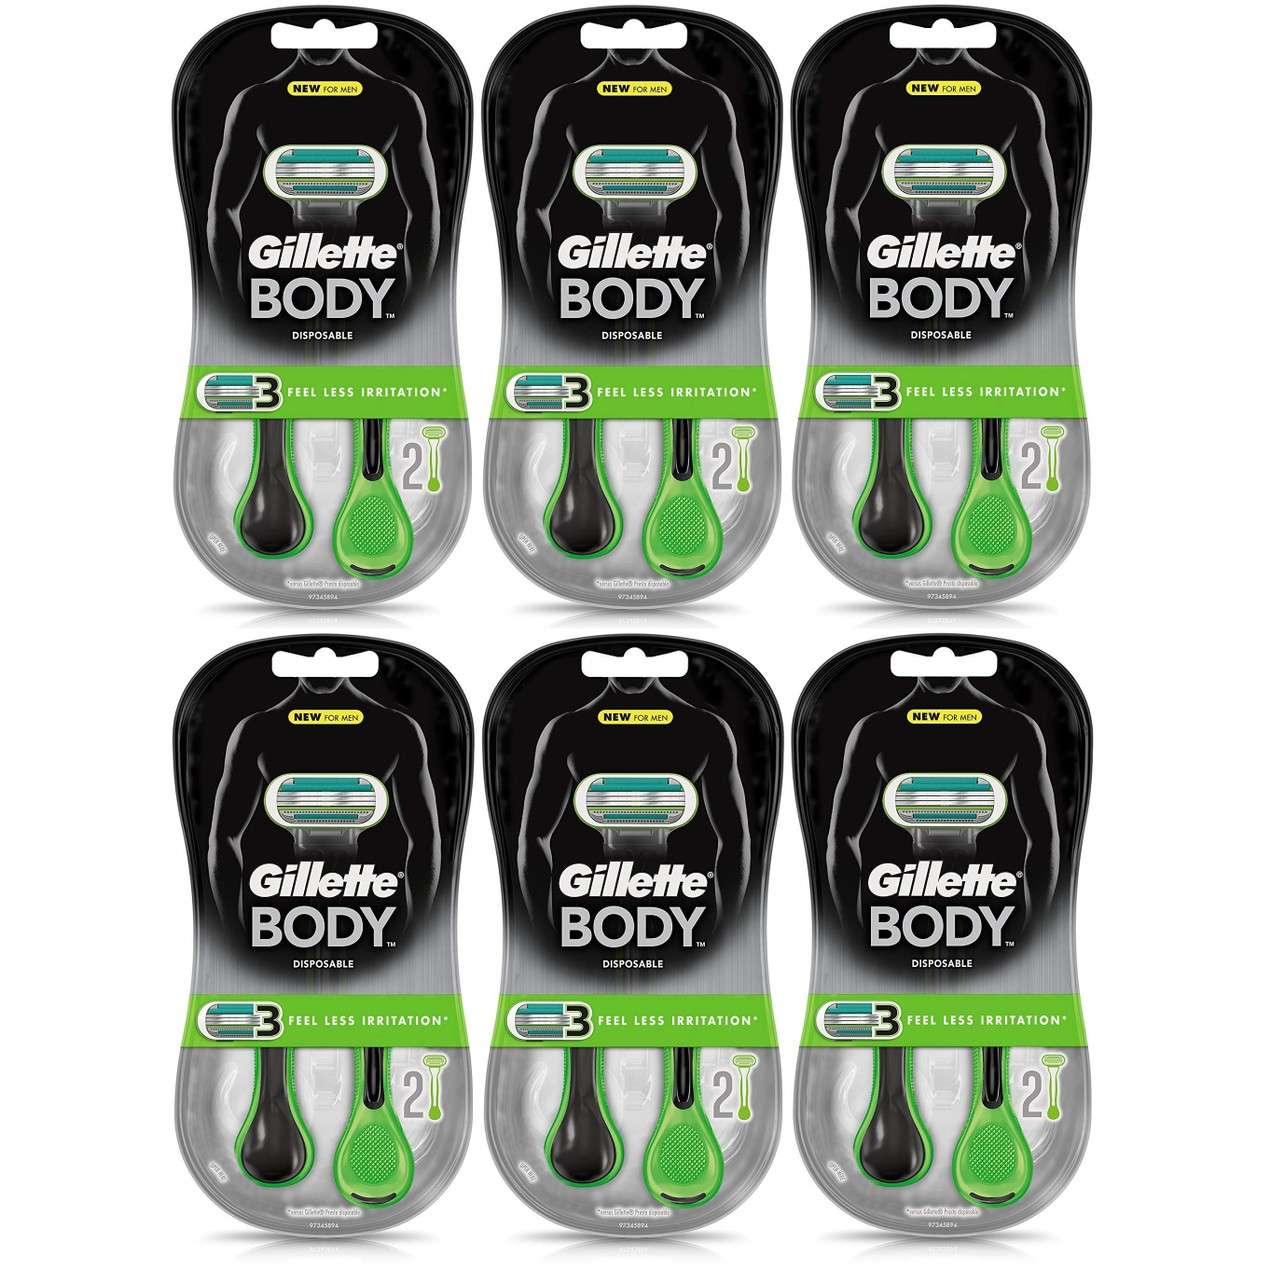 12-Count Gillette Body Disposable Razors